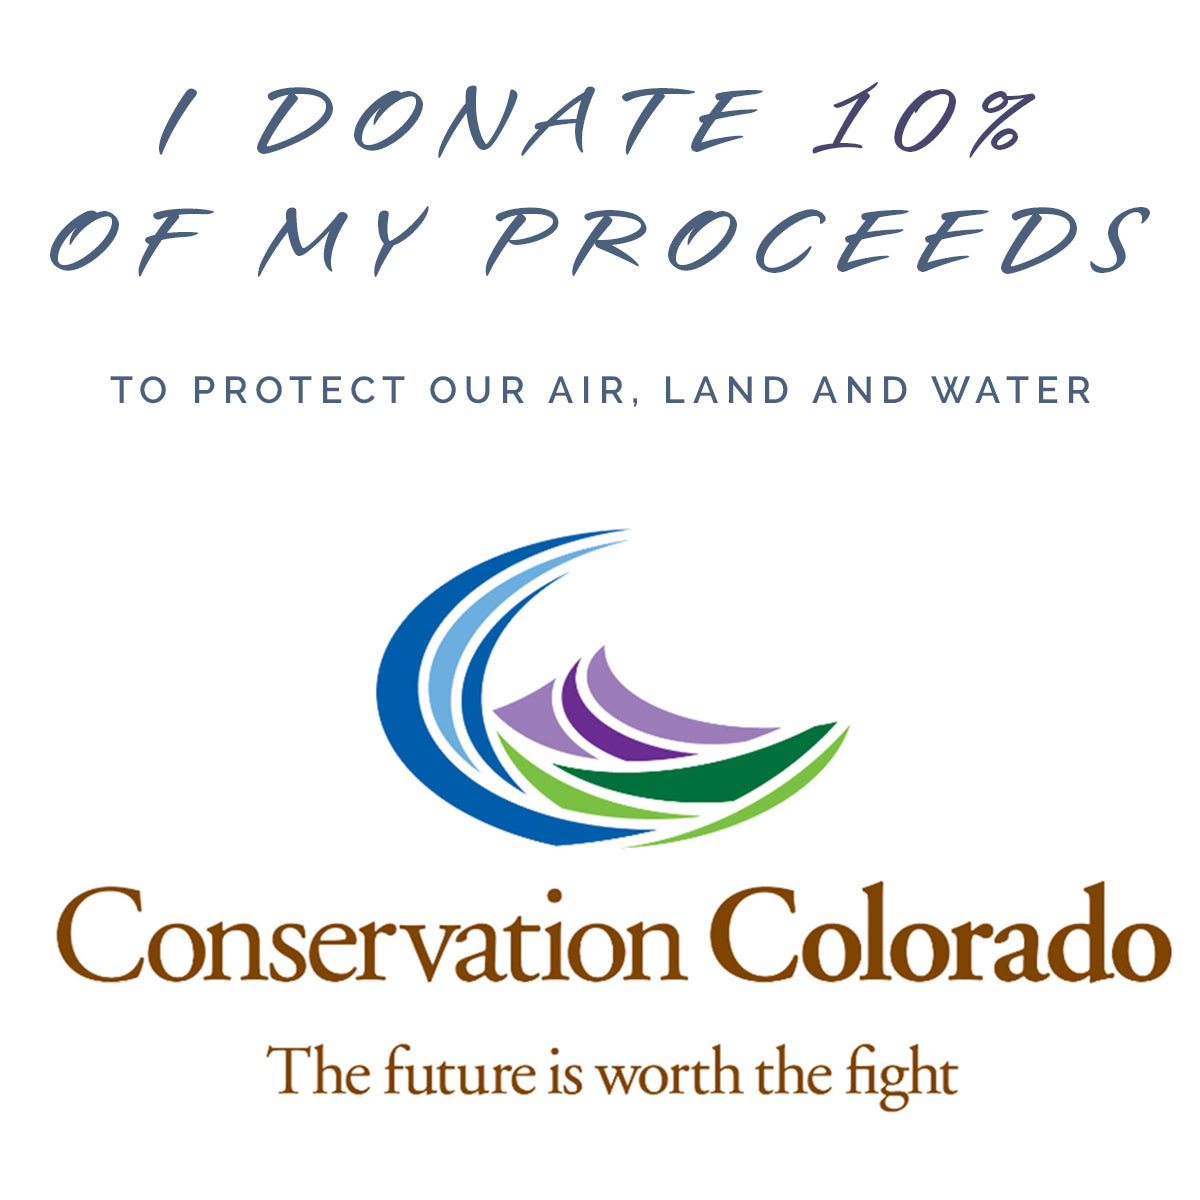 Earth Song Jewelry - Donating to protect the environment with Green Leadership with Conservation Colorado